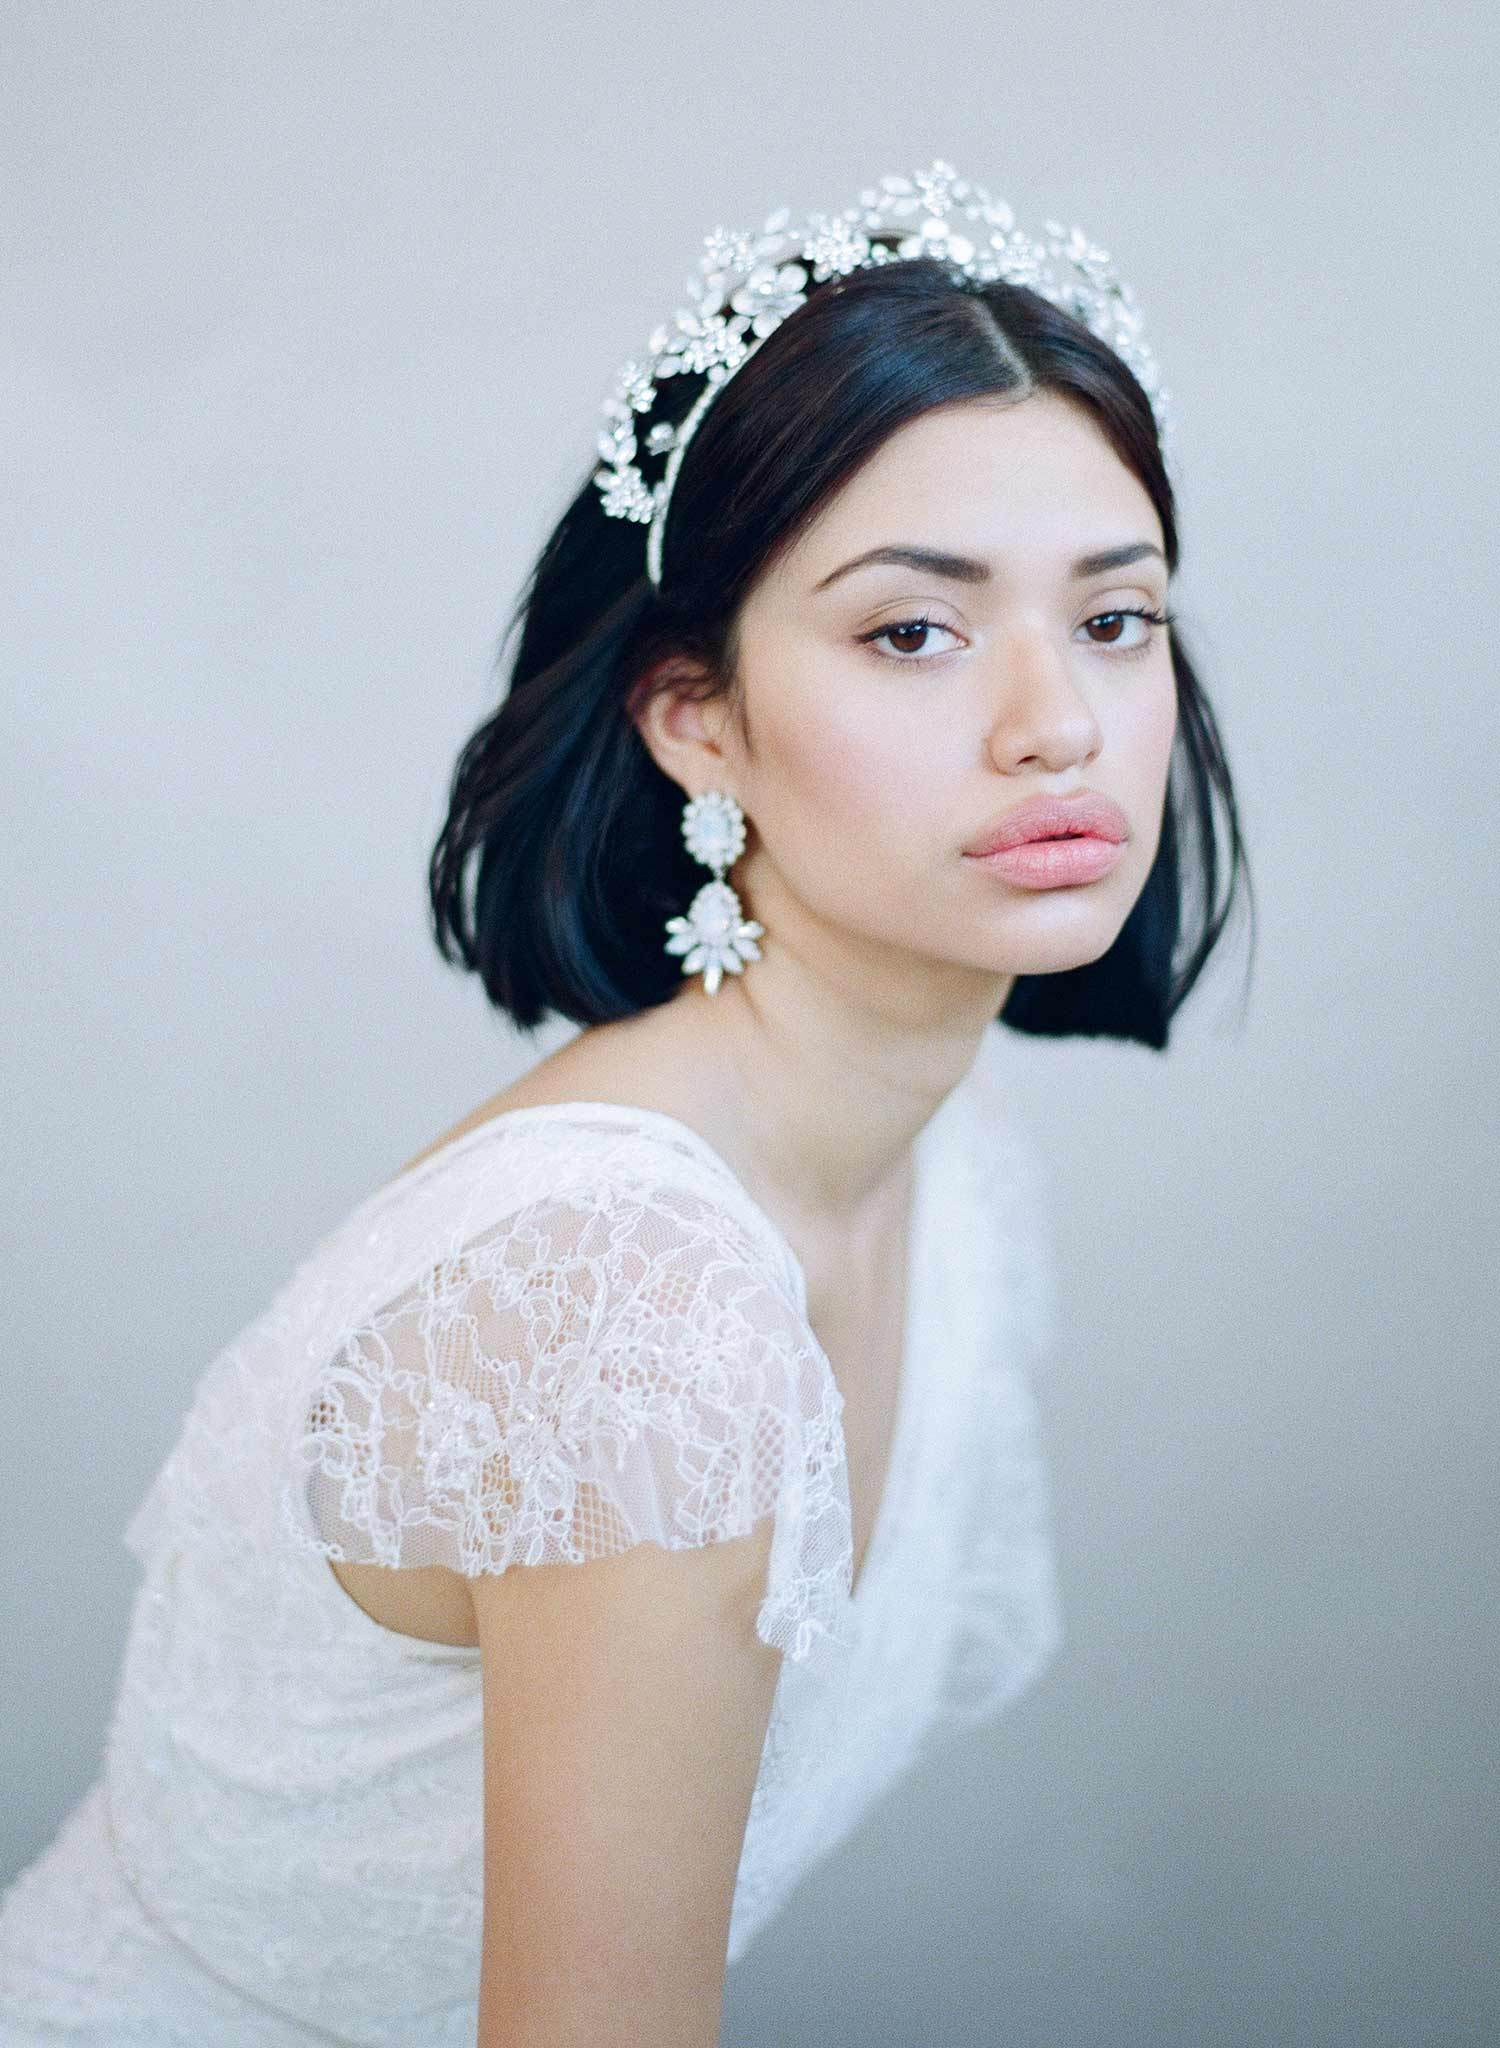 opal tiara, regal crown, modern bride, queen fashion